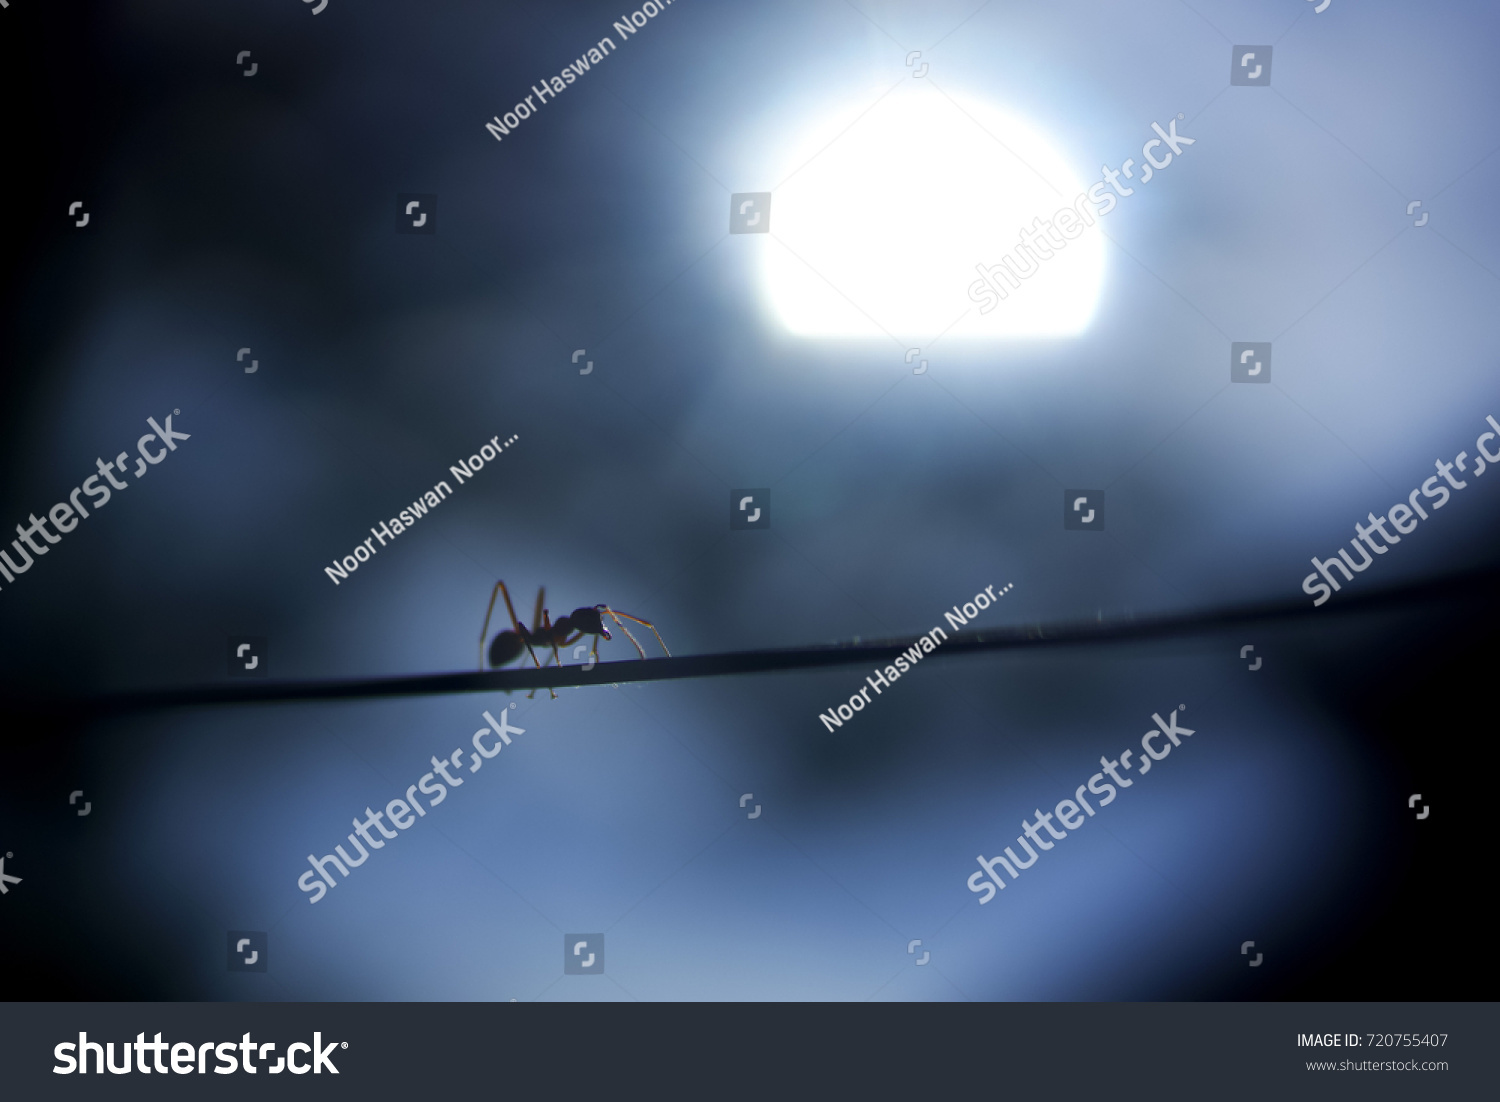 Fire Ants Crossing Wire Silhouette Against Stock Photo (Royalty Free ...